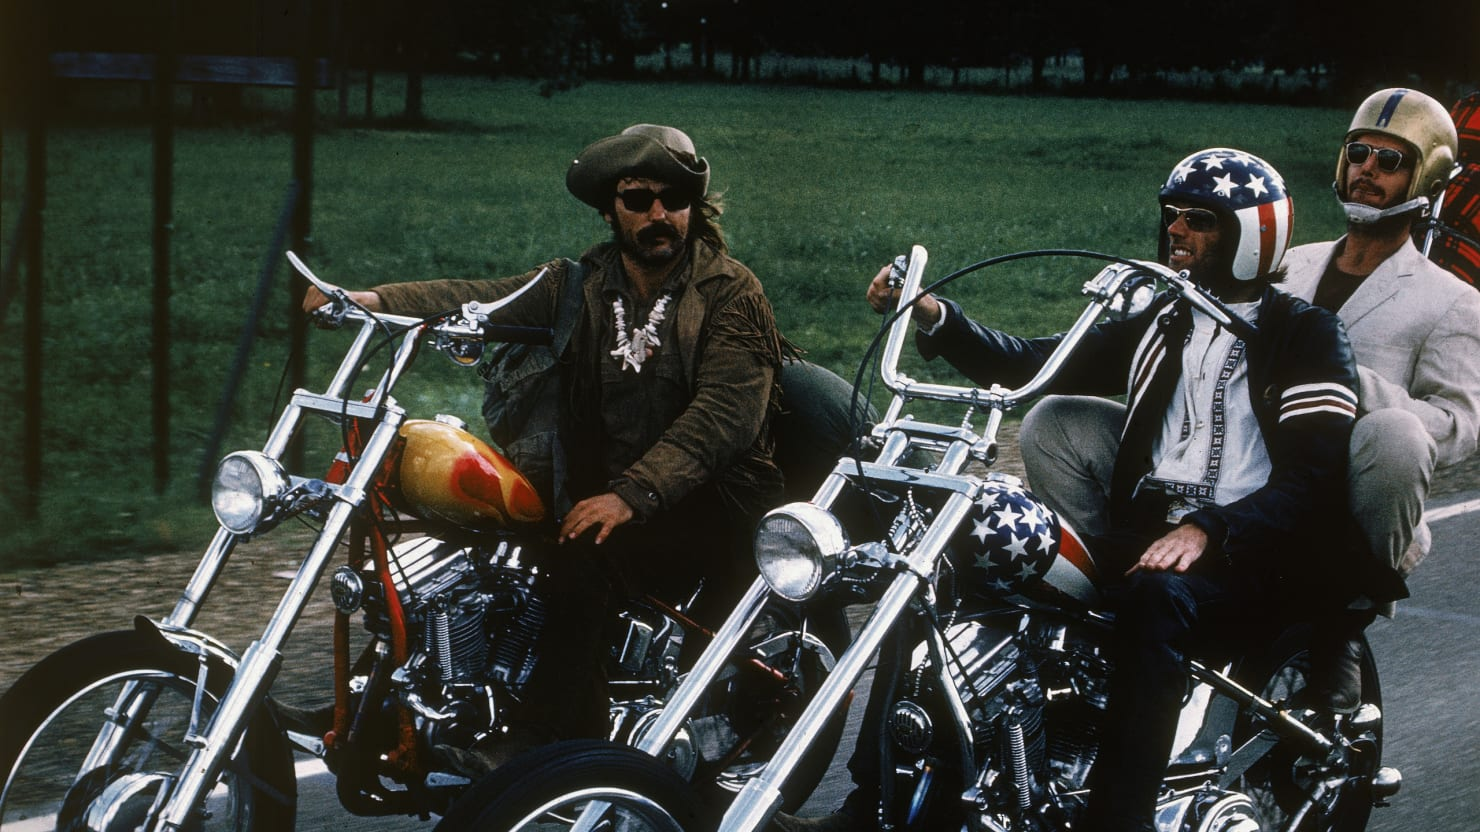 Choppers, Road Hogs and Bikes: Vintage Photos of Motorcycles on the Road